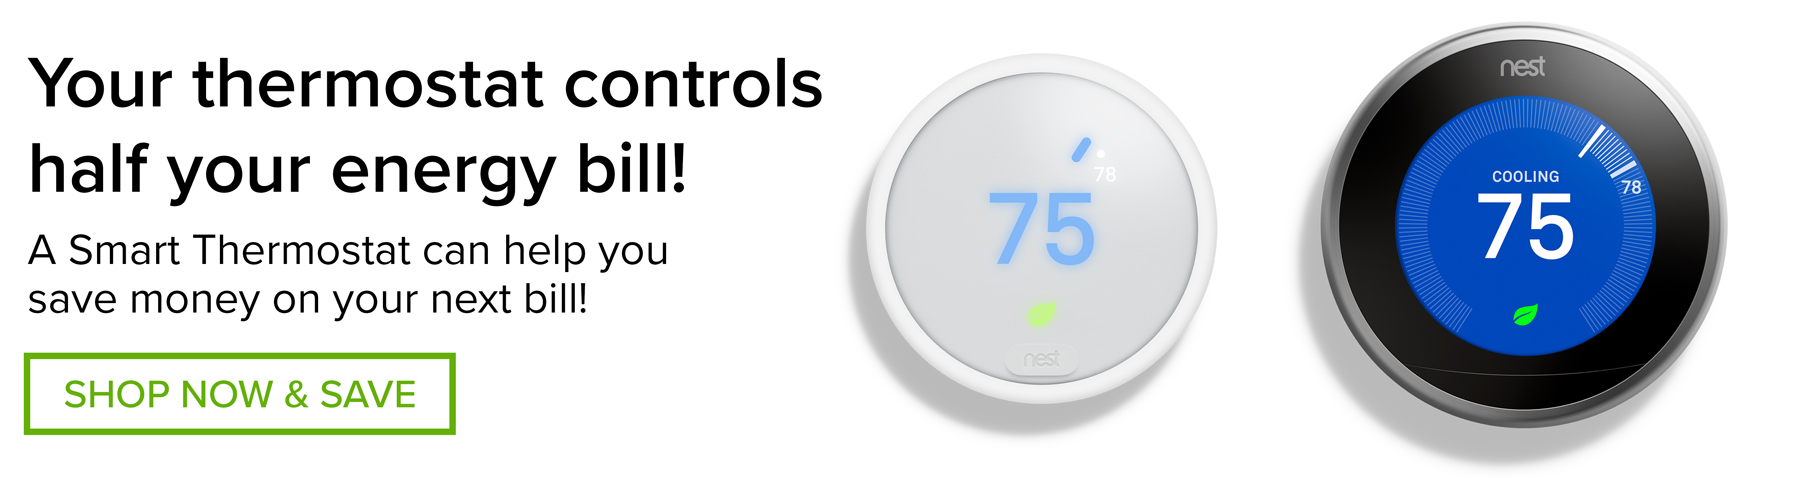 Instant Savings on Smart Thermostats!